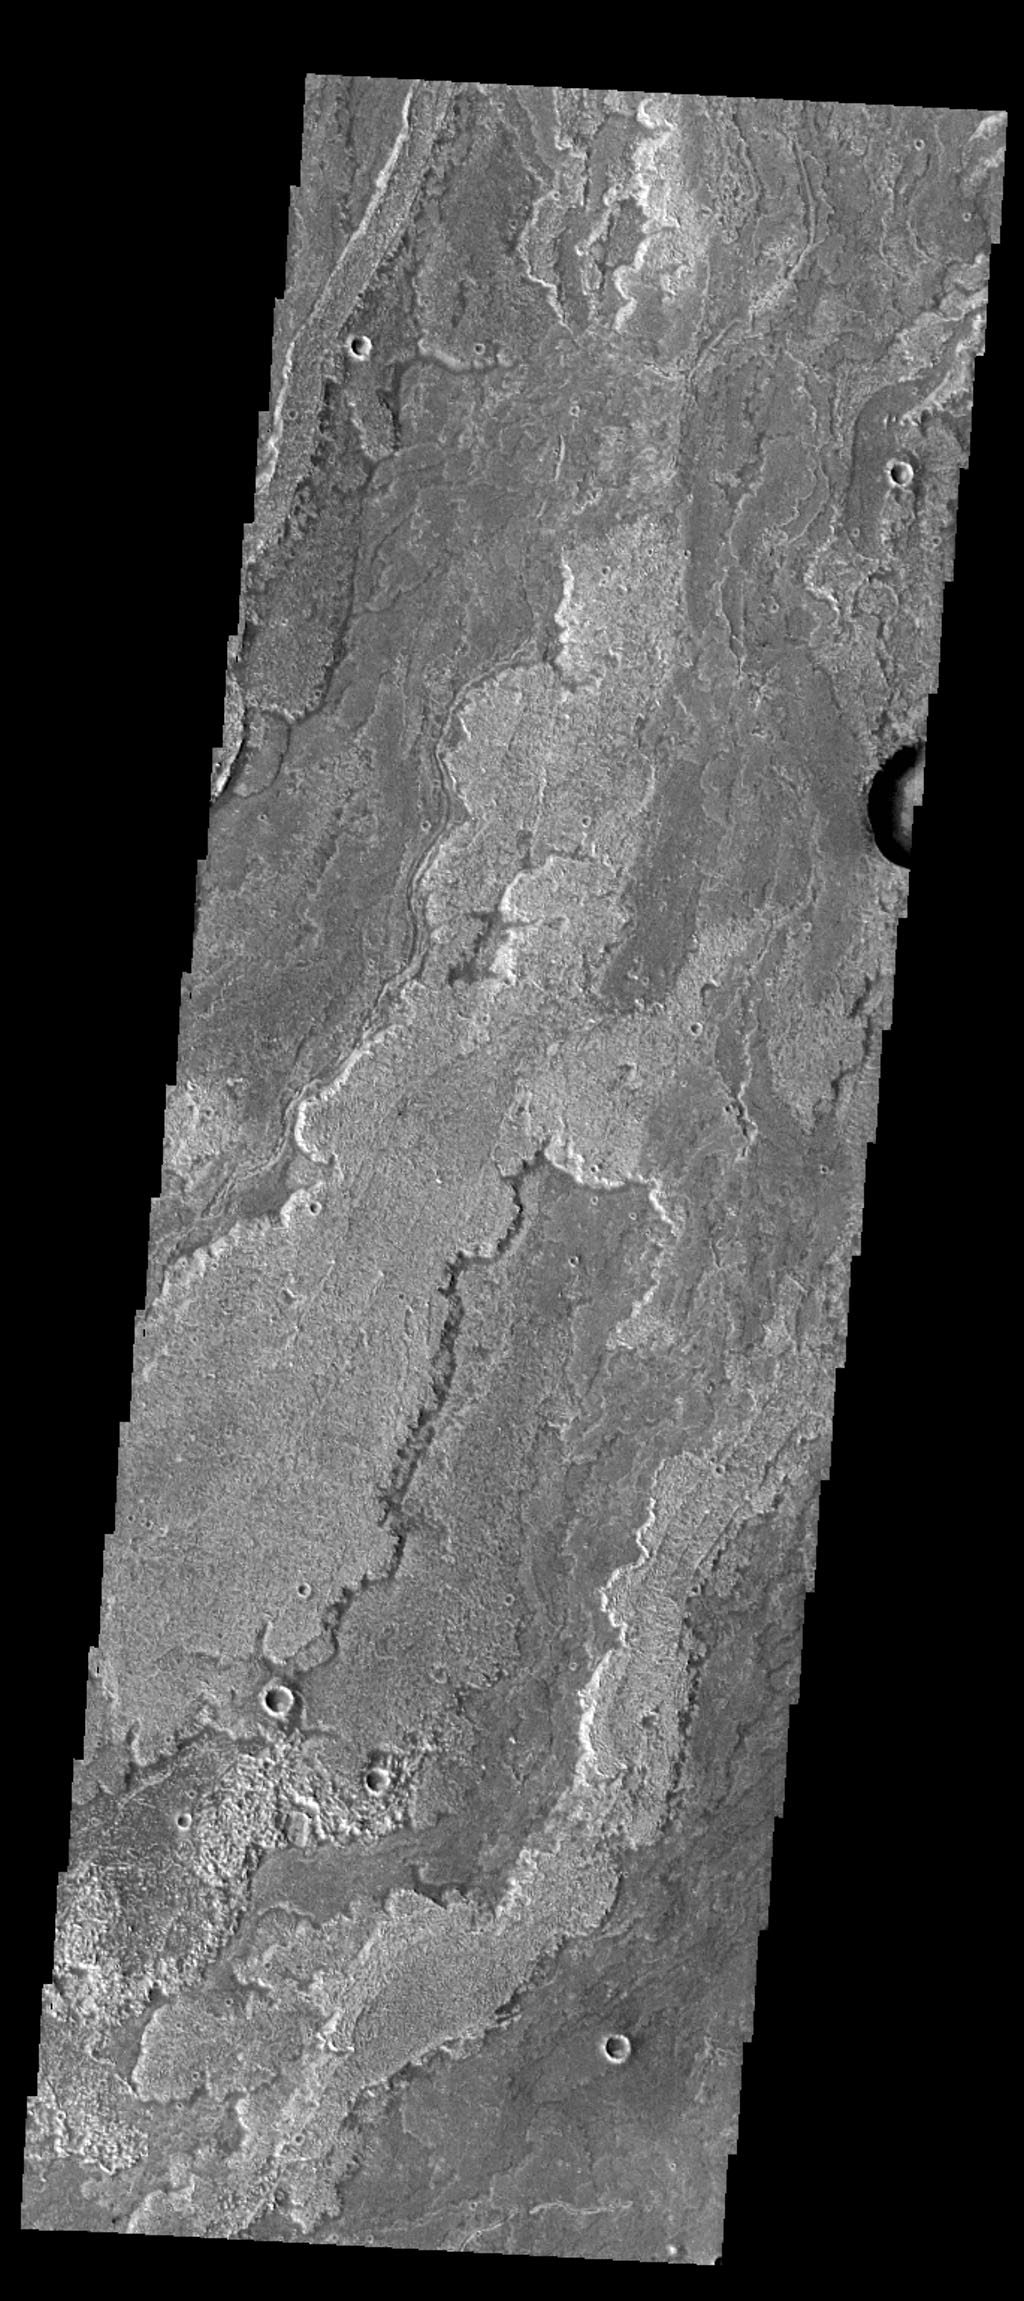 The volcanic flows in this image from NASA's Mars Odyssey spacecraft are part of Daedalia Planum. The flows originated at Arsia Mons.